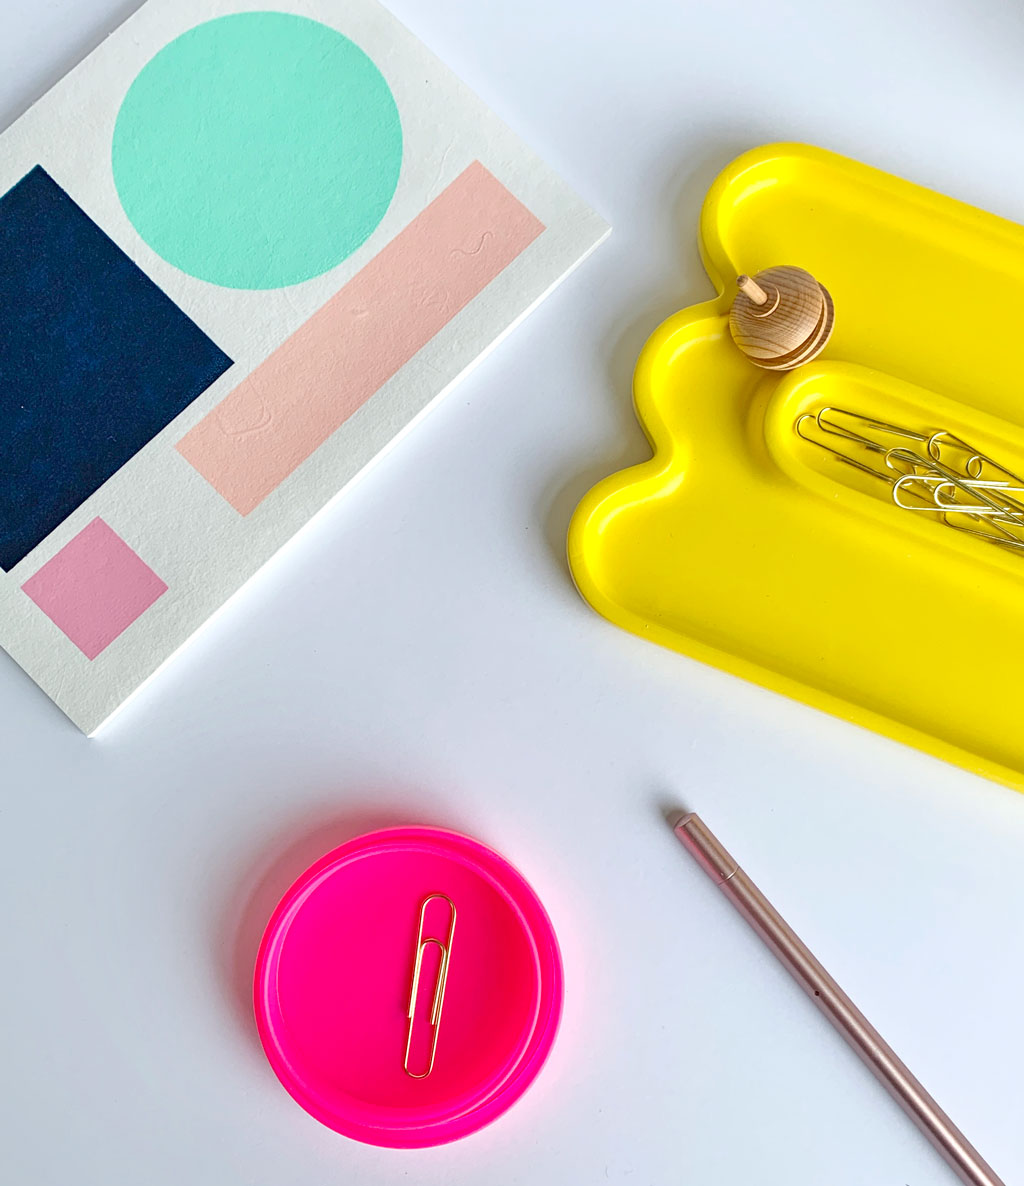 bright, colorful desk supplies like a notebook, yellow desk tray, hot pink paper clip holder